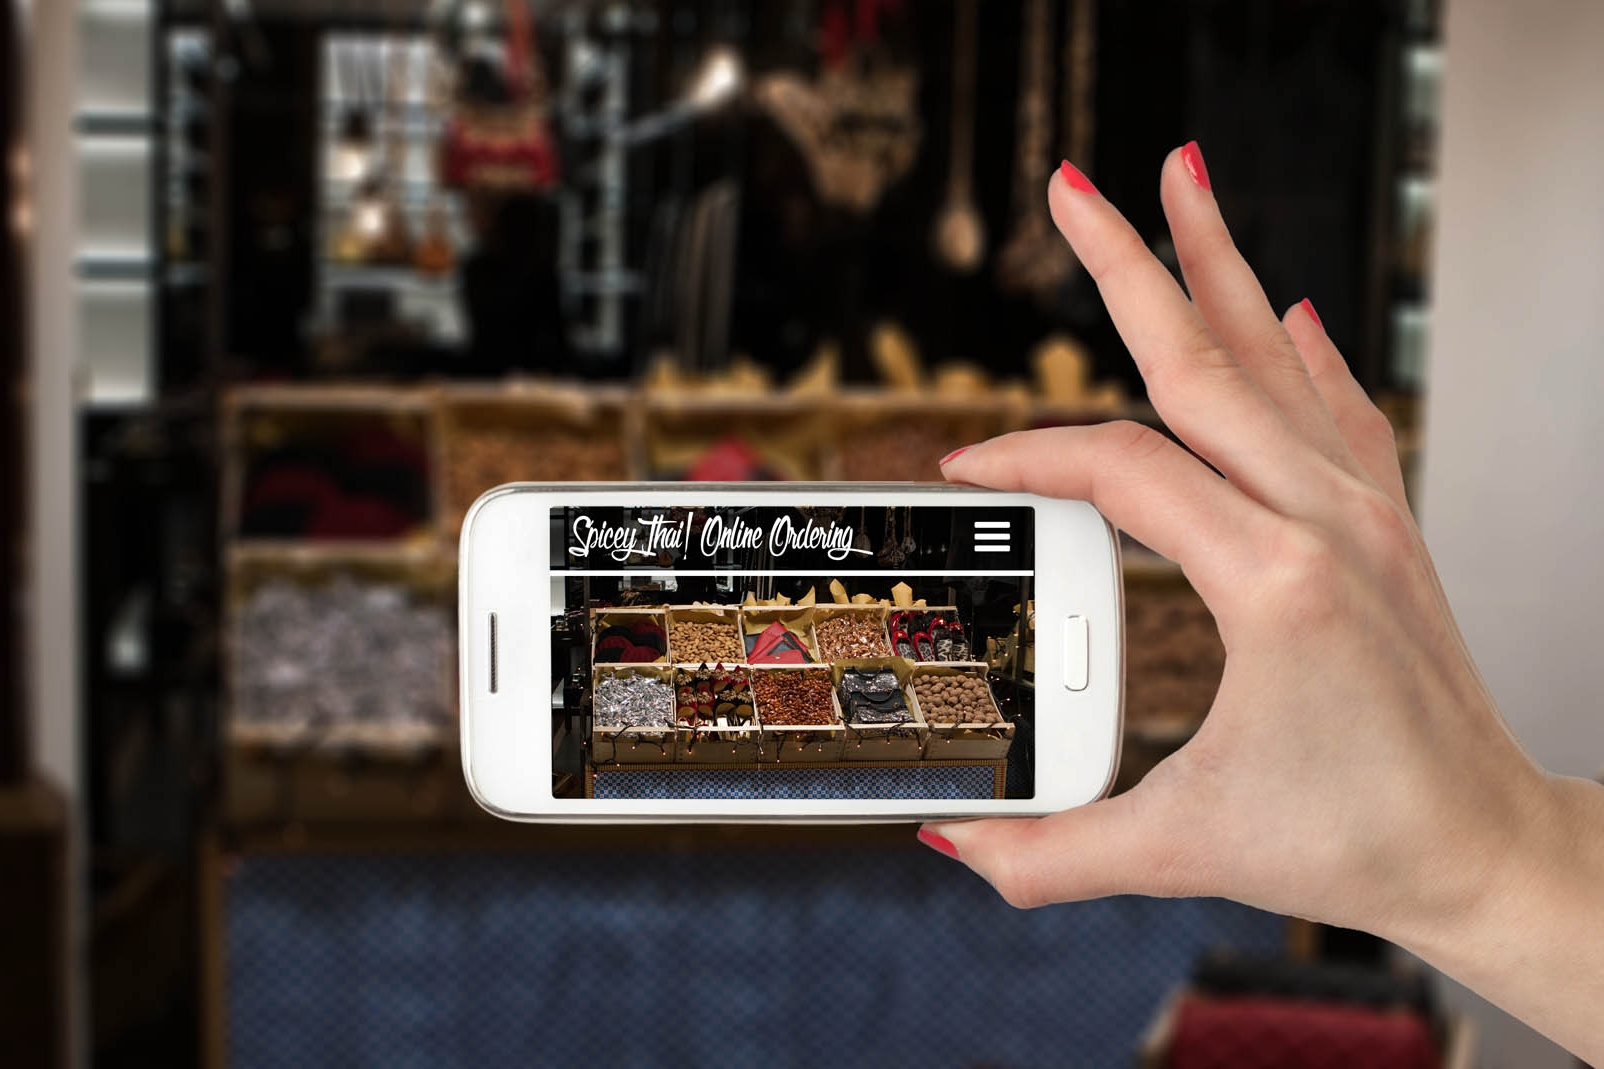 Create a frictionless guest experience. - Your brand will extend across devices, at every customer touchpoint, from mobile to in-store self-order touchscreens.